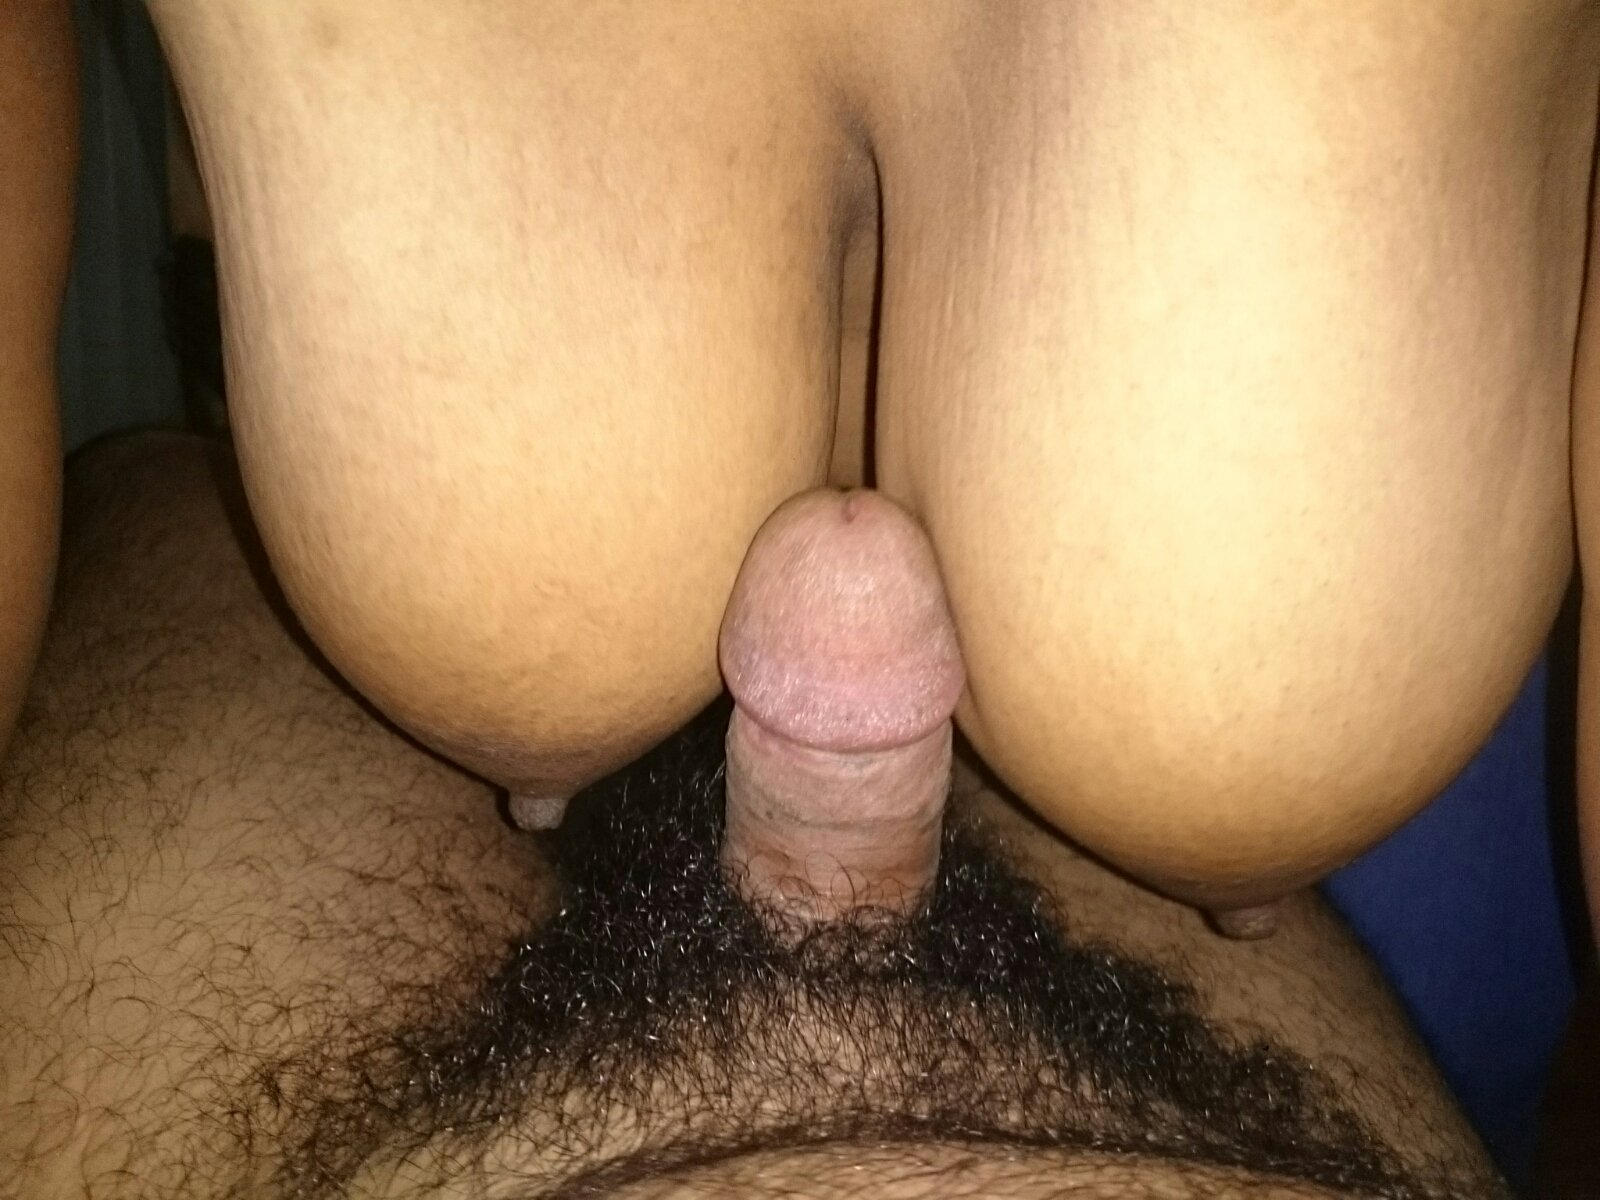 Fuck my husband in the ass